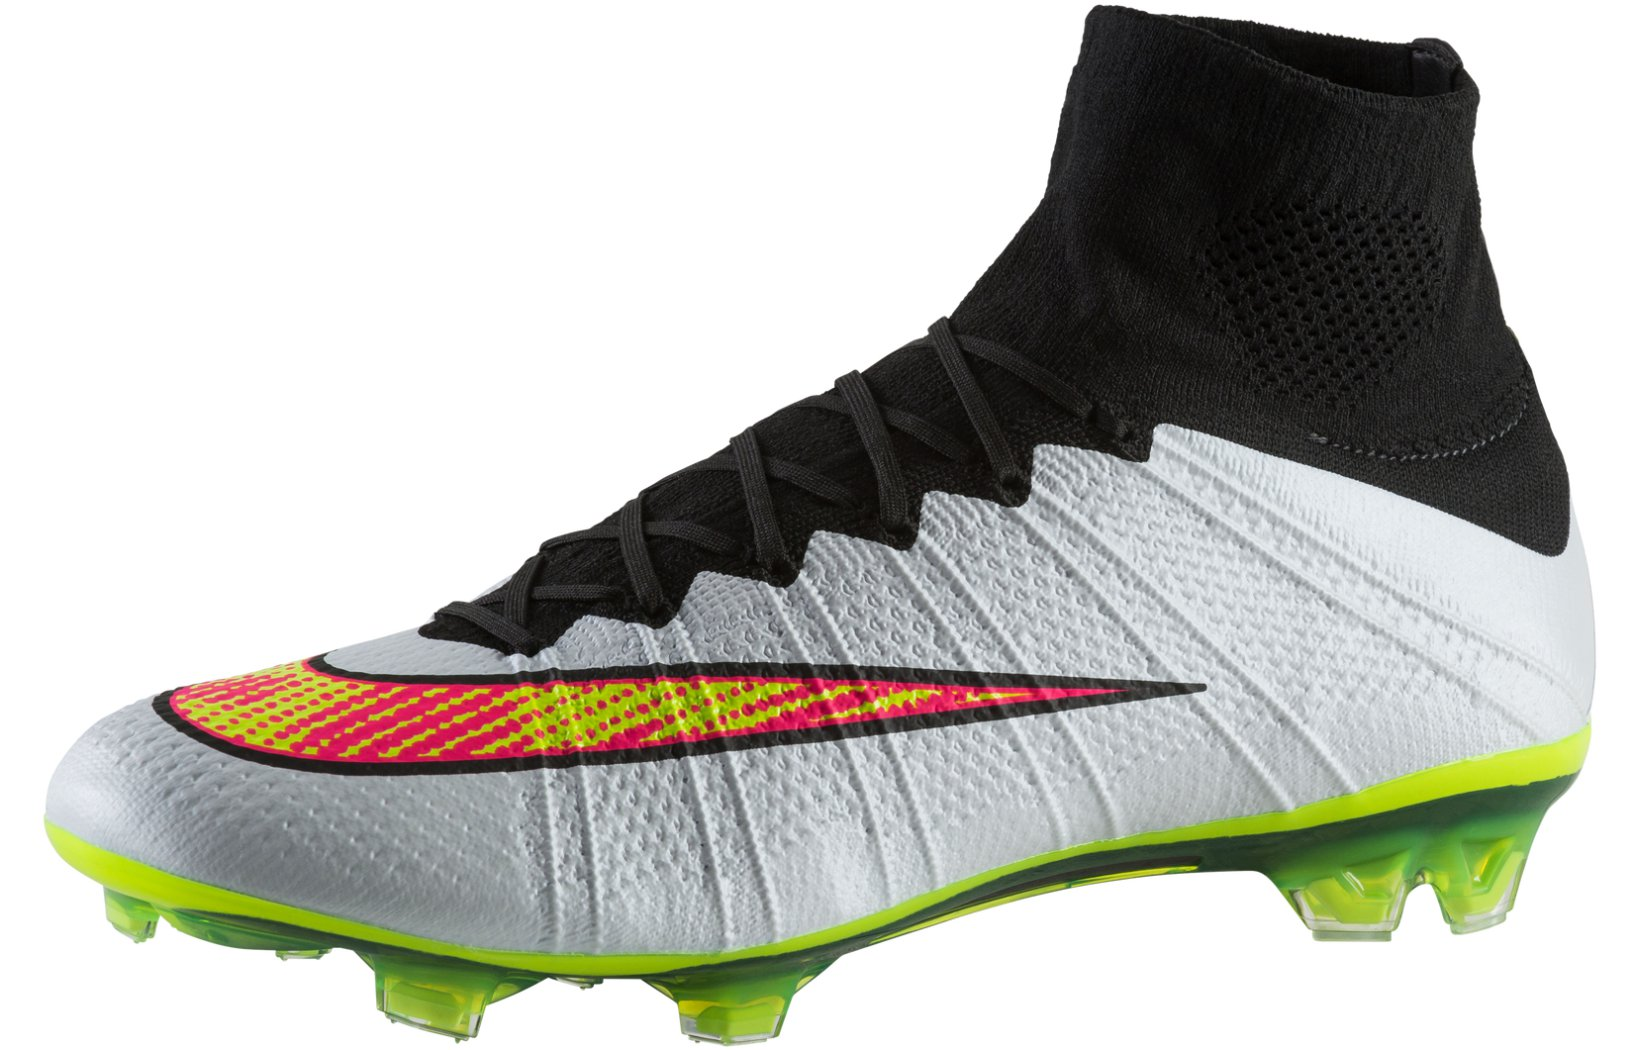 official photos c14a1 91af1 nike mercurial superfly fg